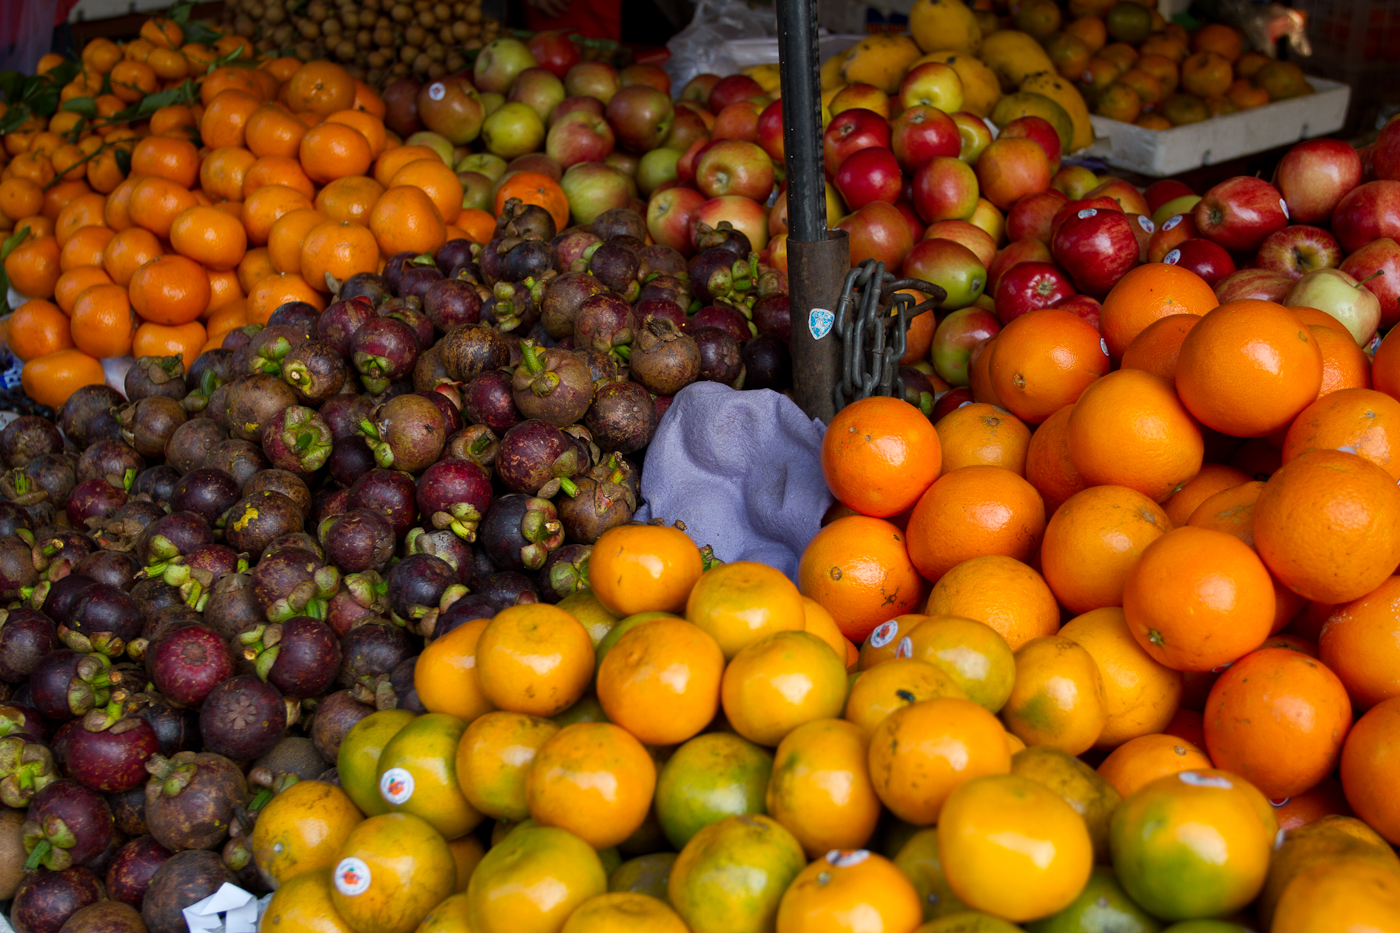 Fruits galore at the Russian Market in Phnom Penh.